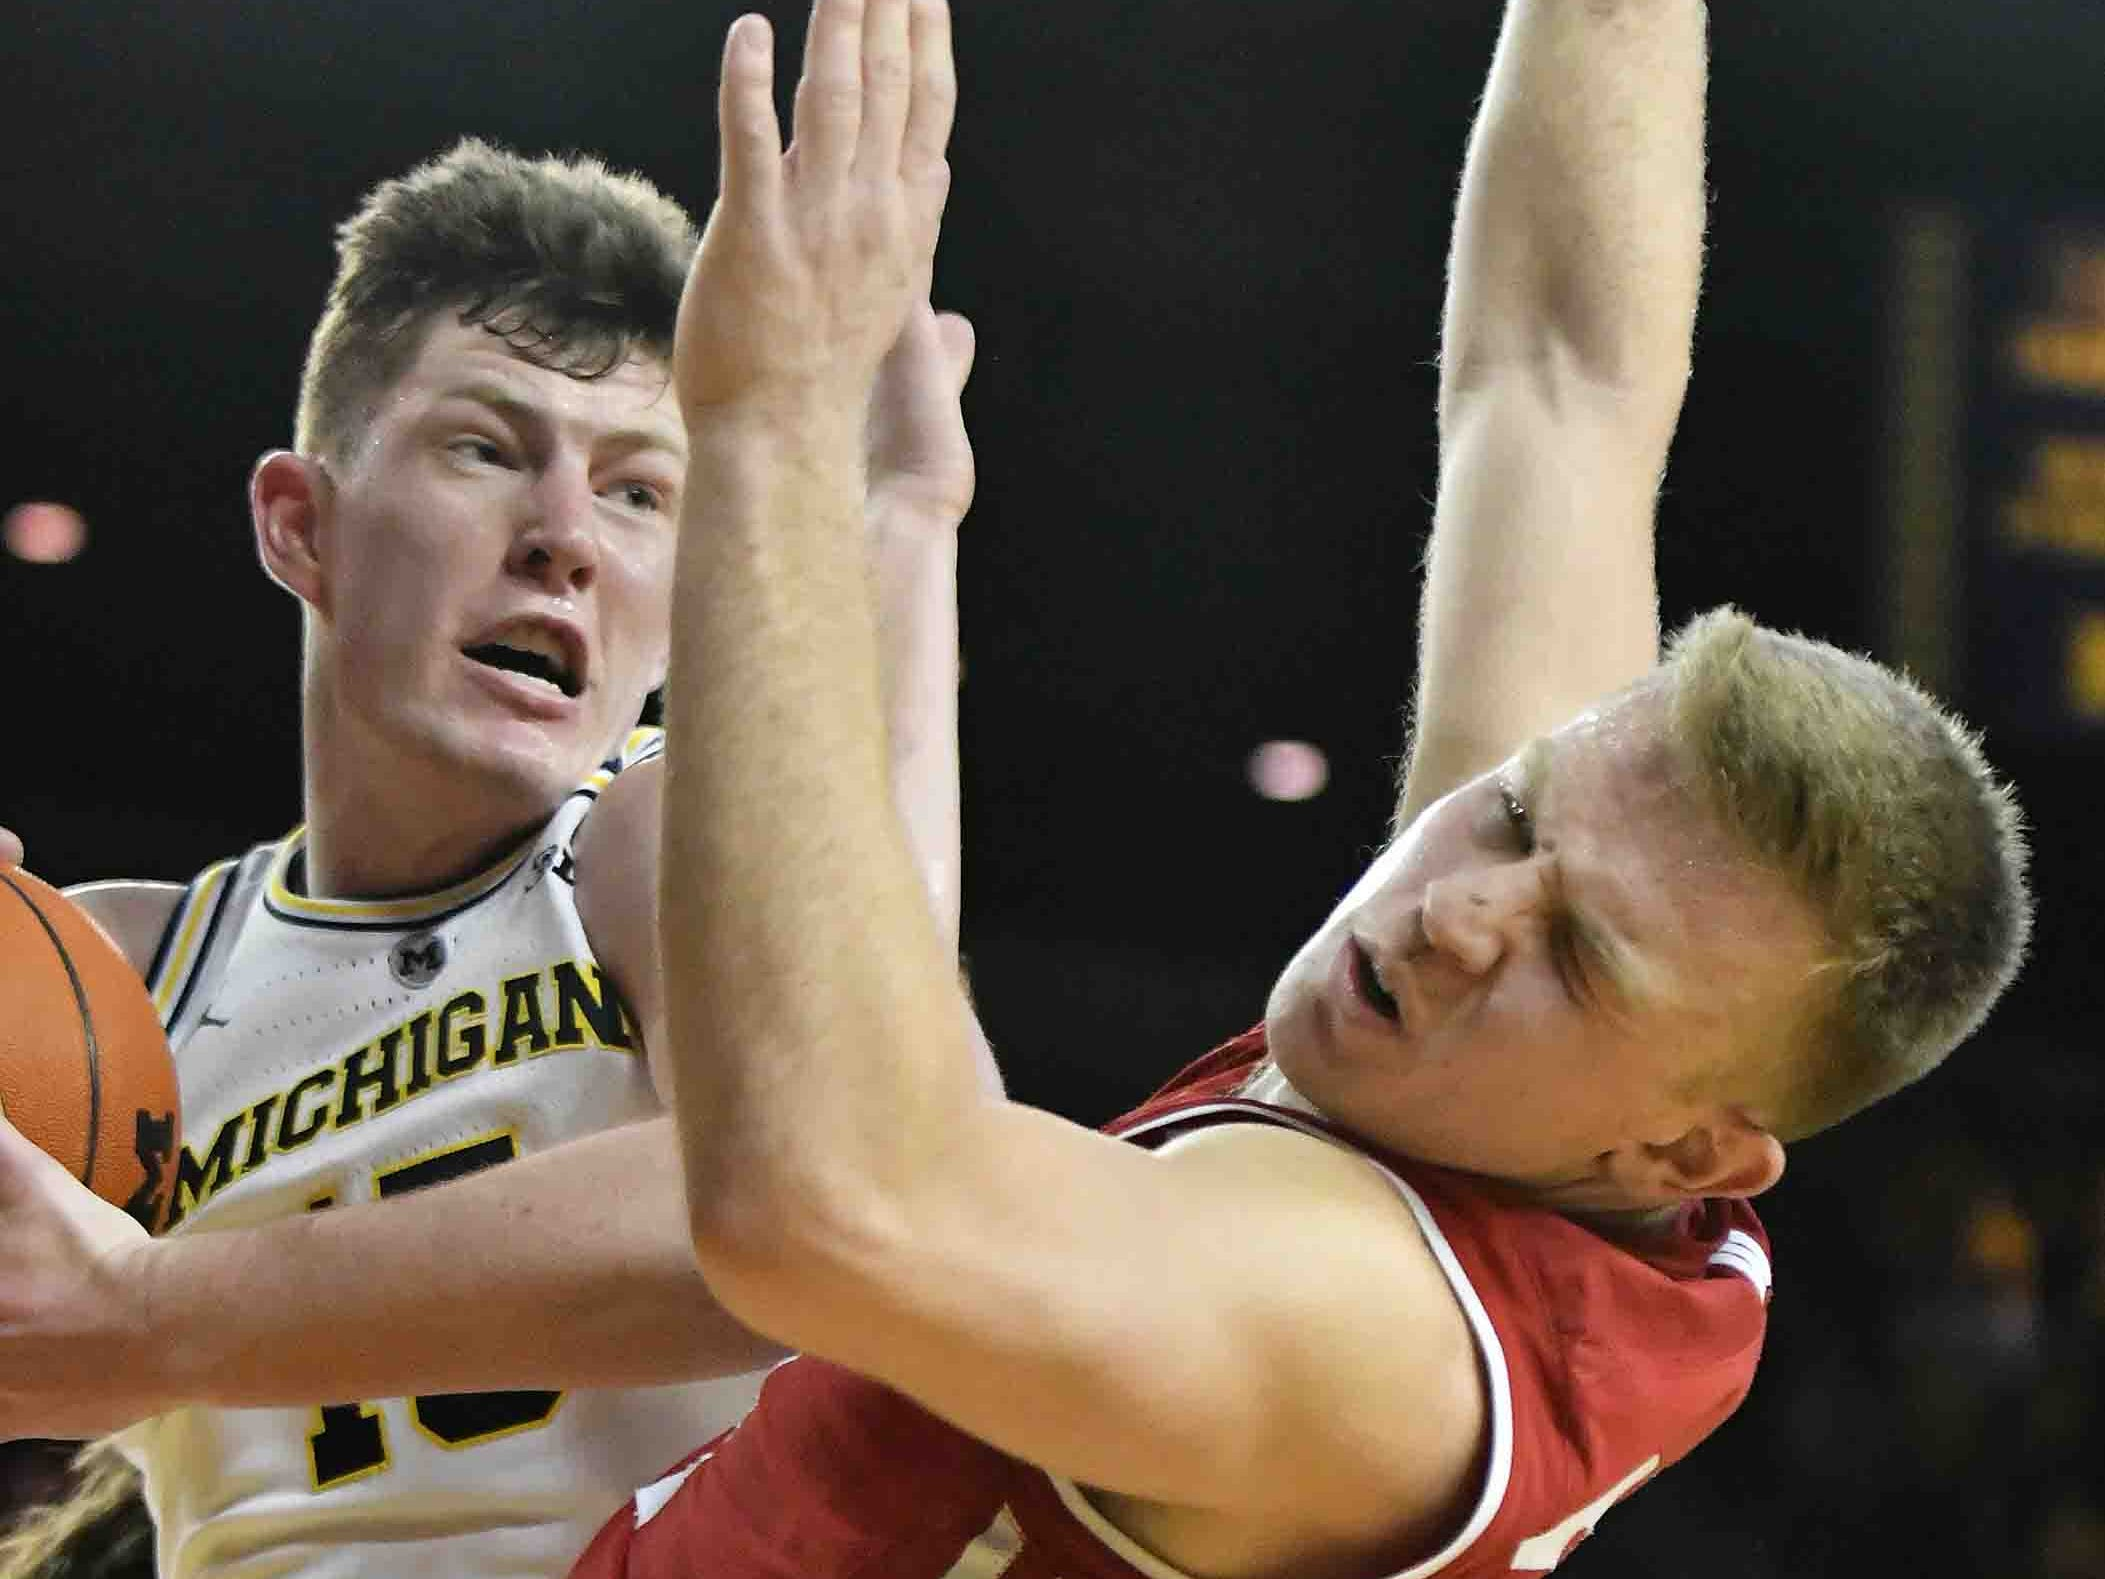 Michigan center Jon Teske (15) comes up with a rebound near Wisconsin guard Brad Davison (34) the second half.